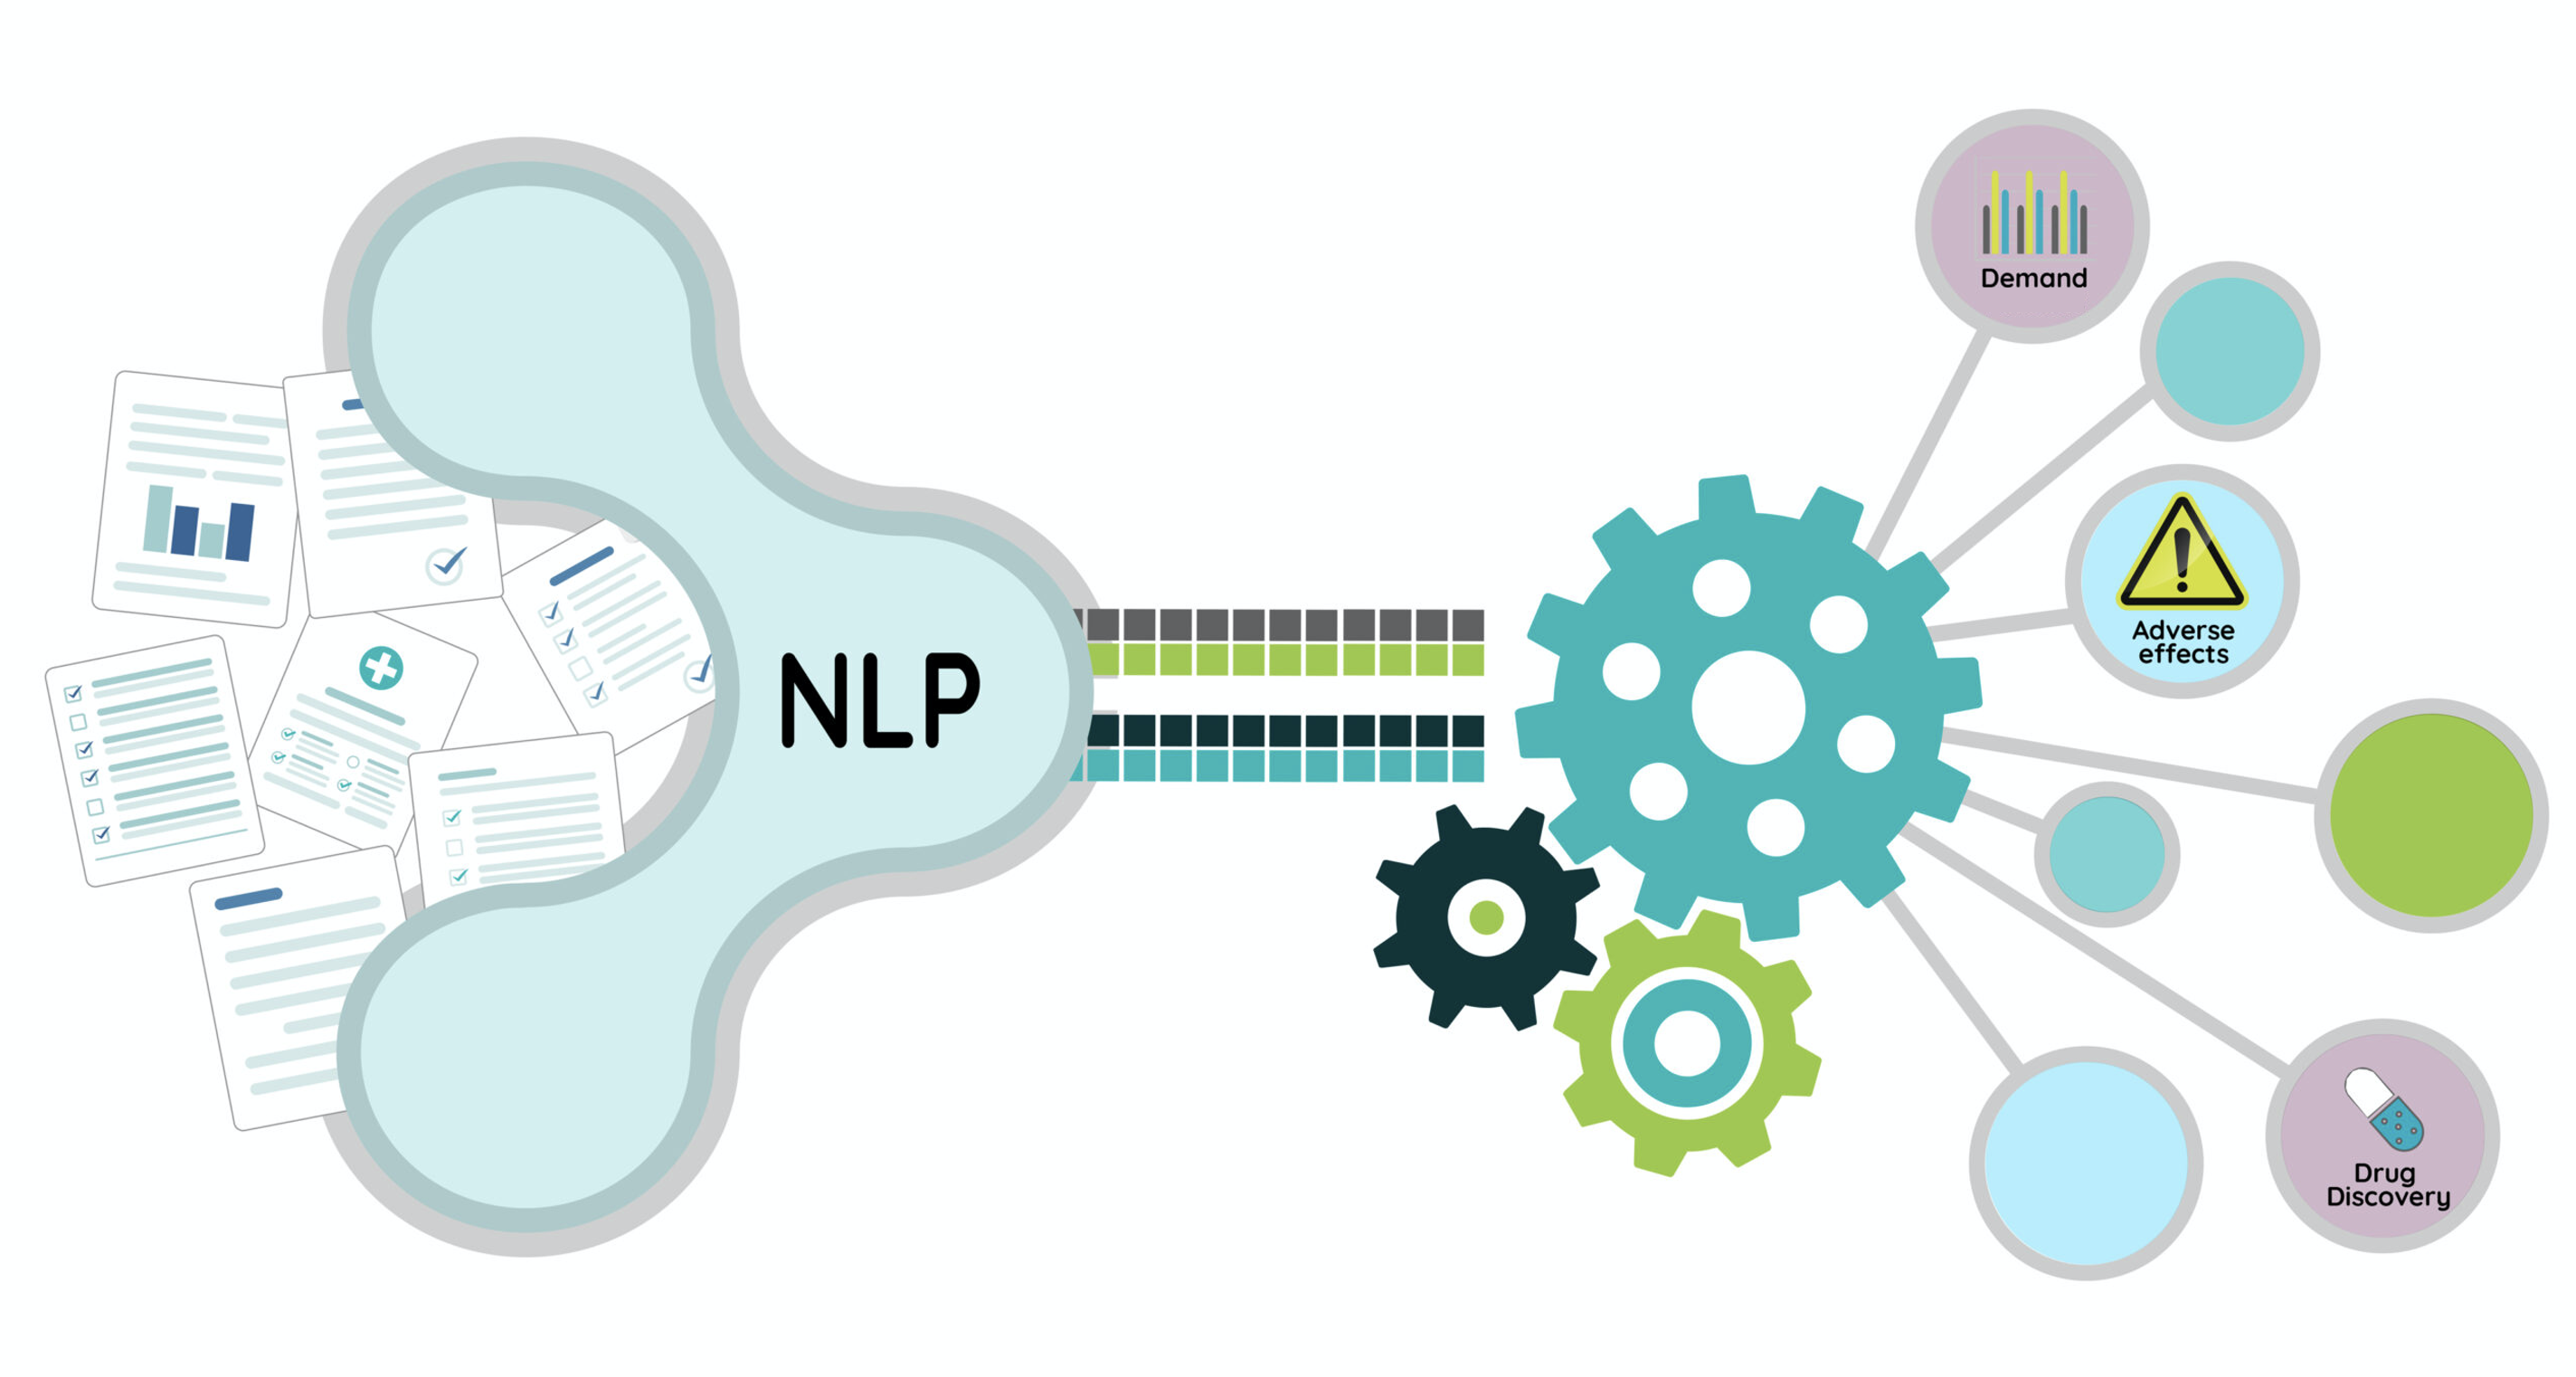 Diagram showing the process followed by NLP